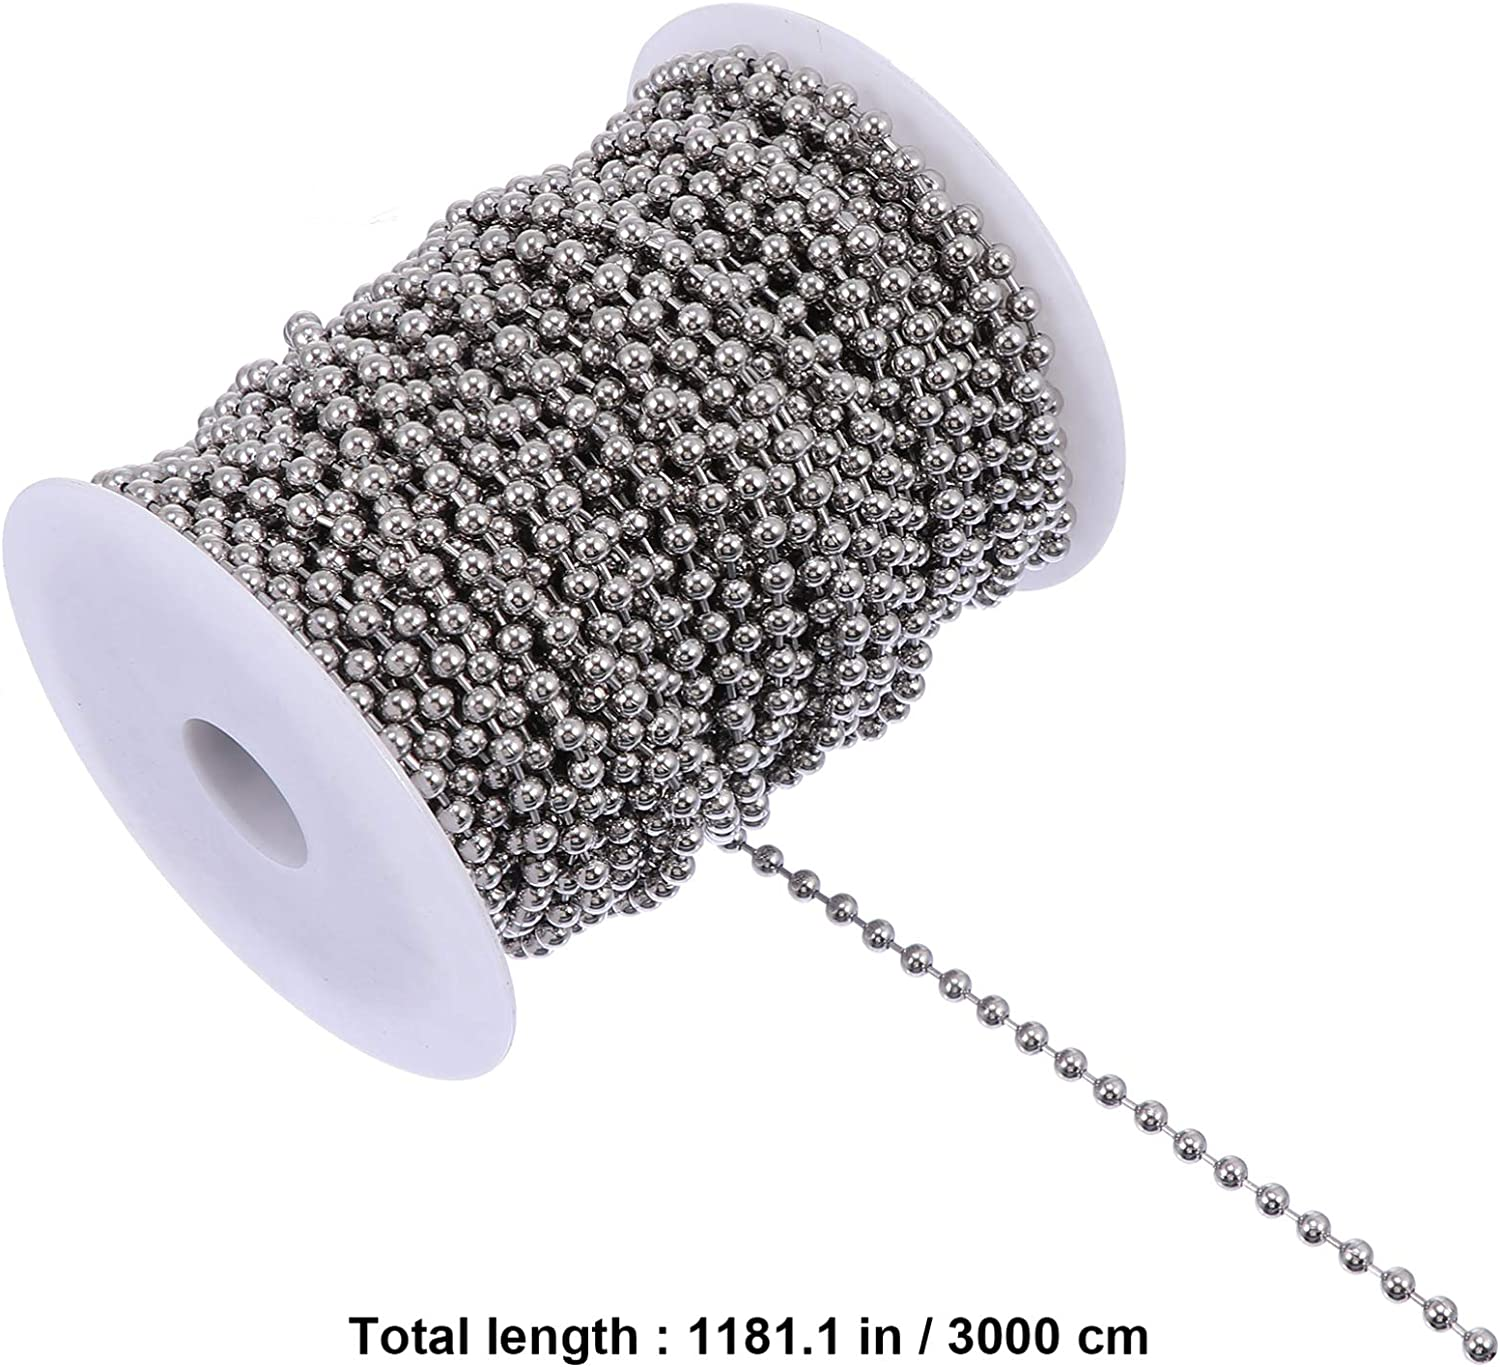 iplusmile Stainless Steel Ball Bead Chain Ball Chains Beaded Pull Chain Extension for Ceiling Fan Light Keychain Tag Bracelet